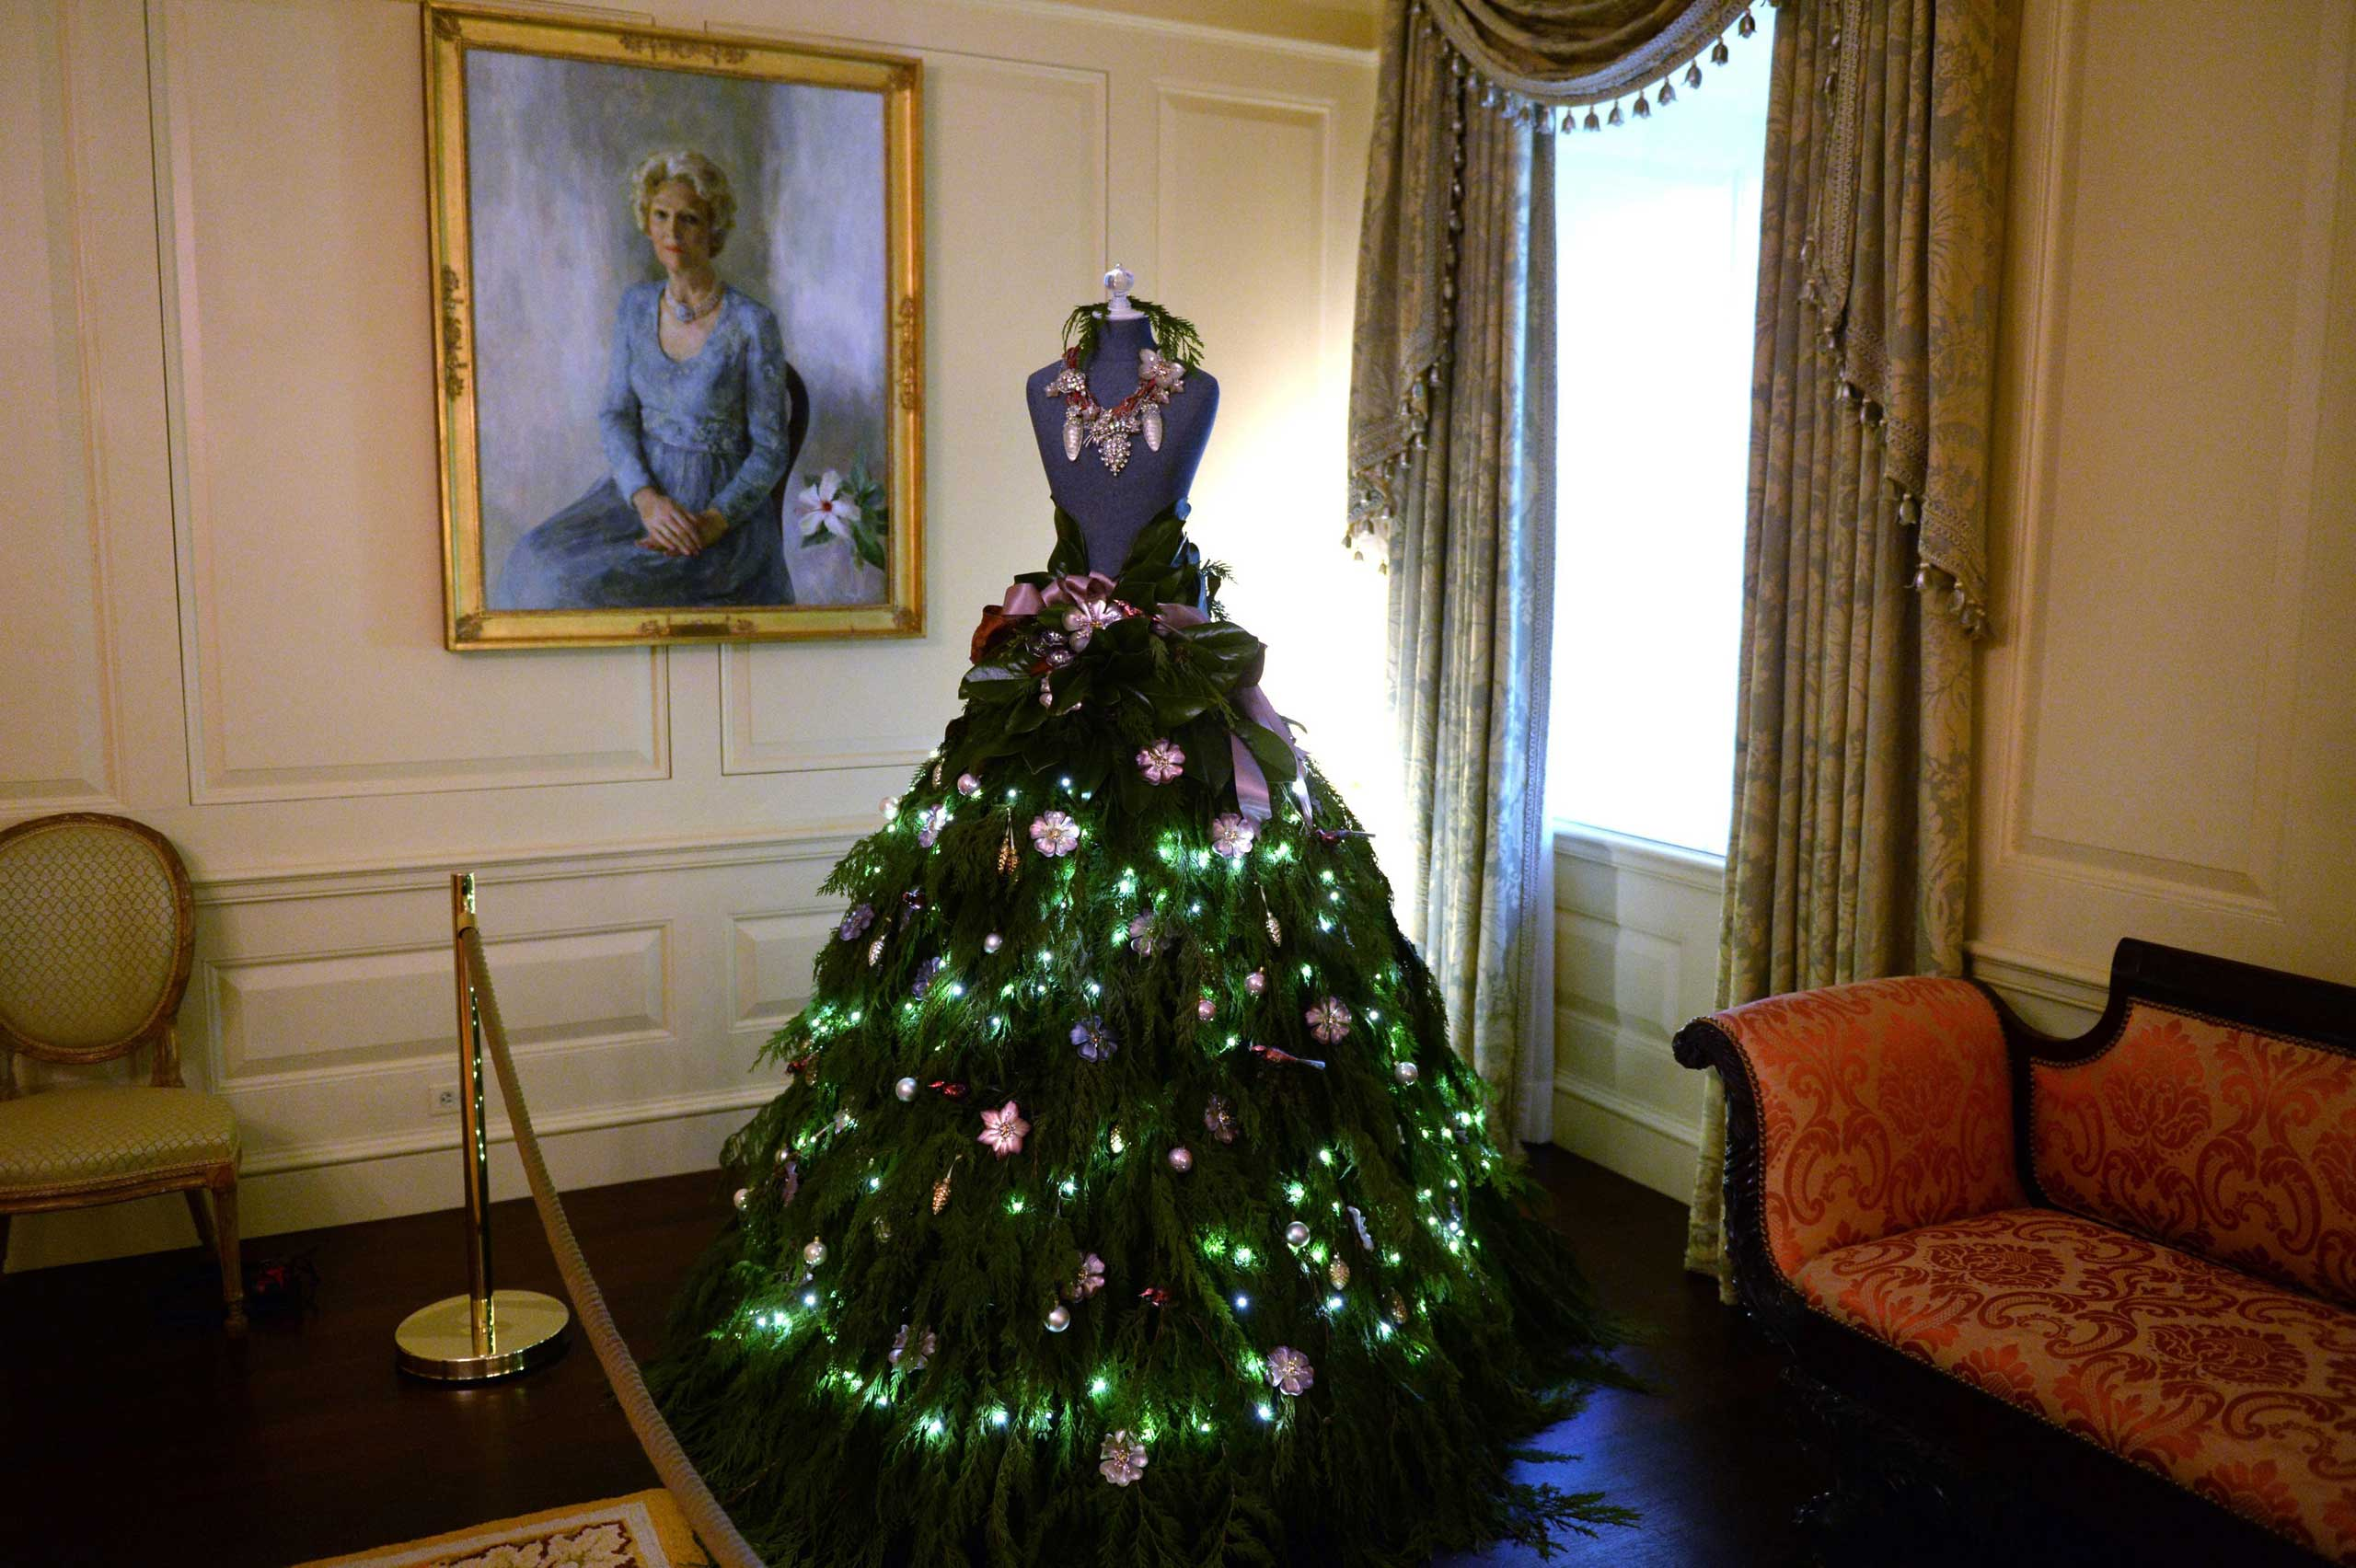 Dec. 03, 2014. A dress form mannequin with a Christmas skirt in the Vermeil room is part of A Children's Winter Wonderland 2014 White House Christmas decorations in the White House in Washington, D.C.